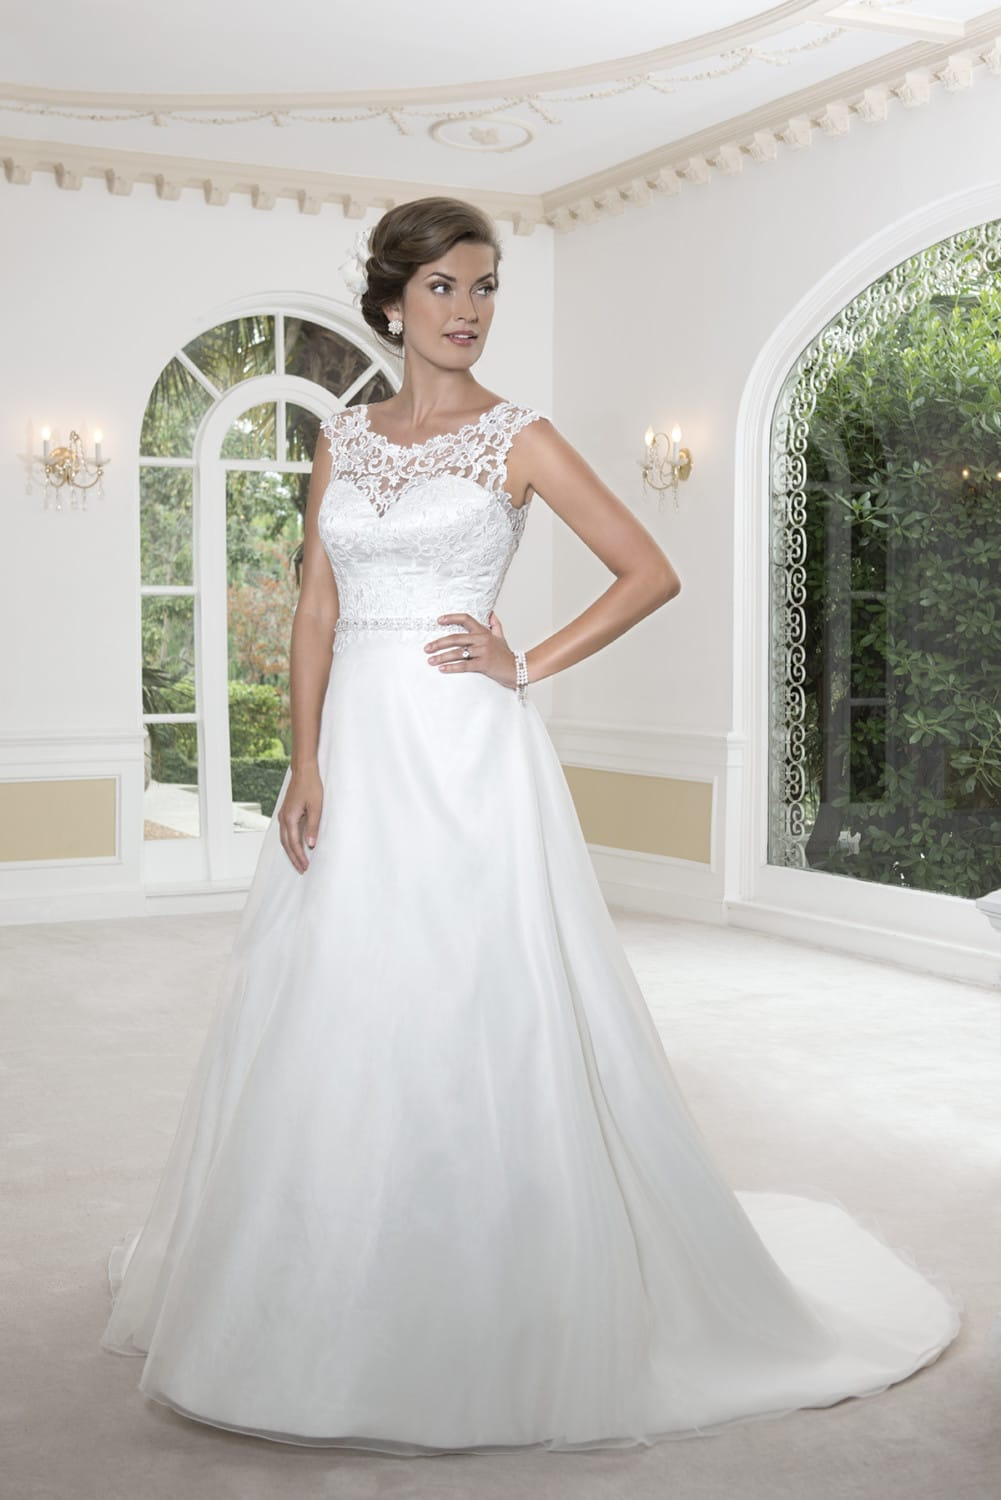 Venus tara wedding dress sell my wedding dress online for Sell wedding dress for free